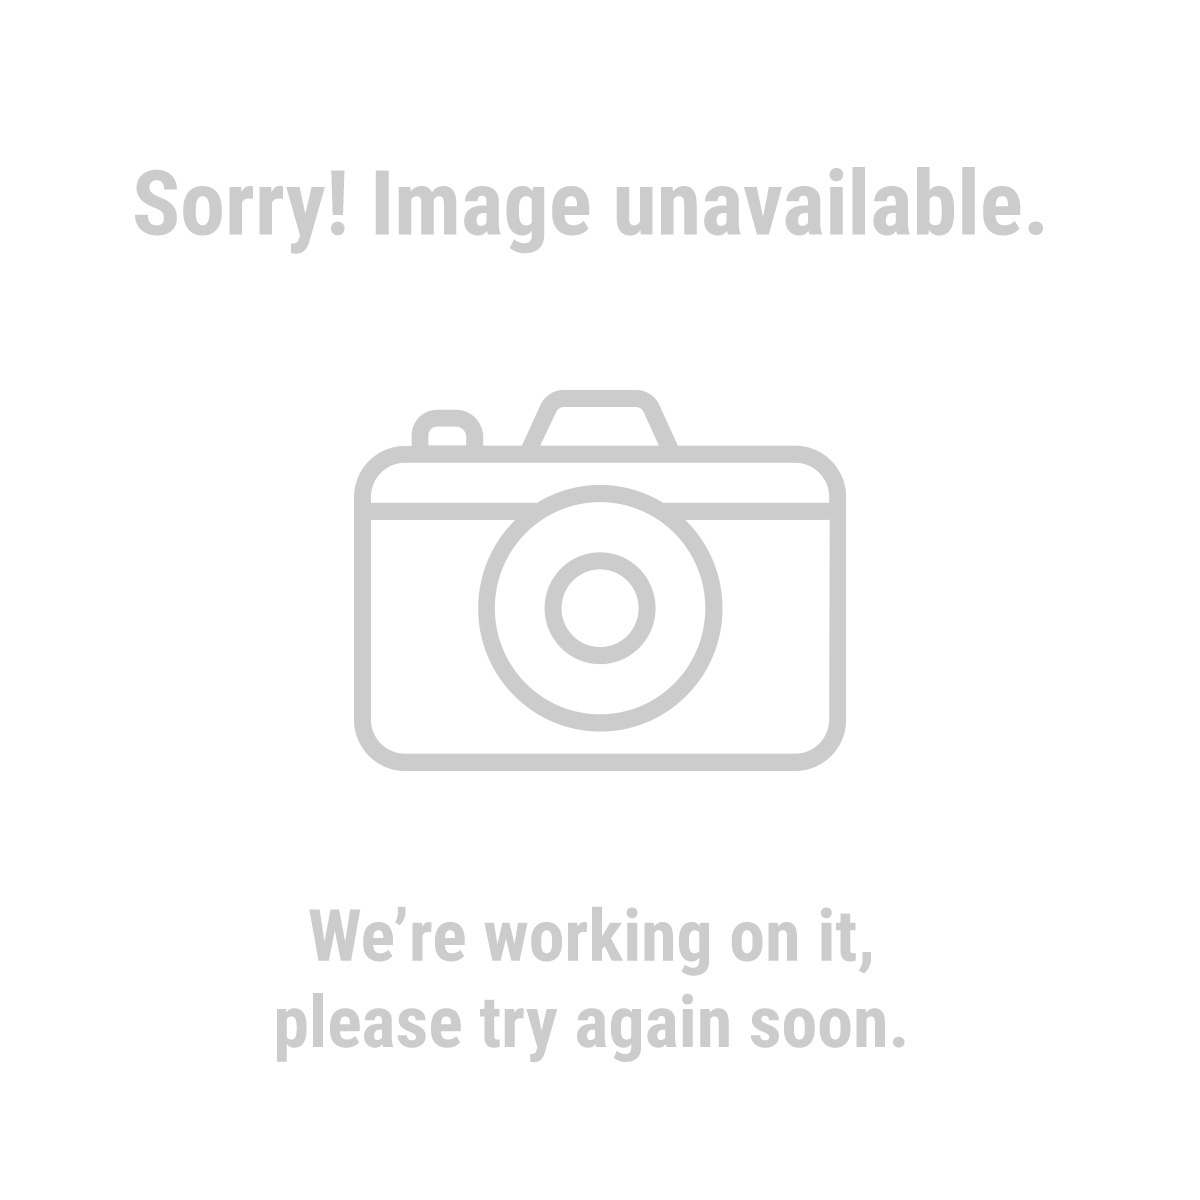 Pittsburgh® Automotive 62854 880 lb. Electric Hoist with Remote Control